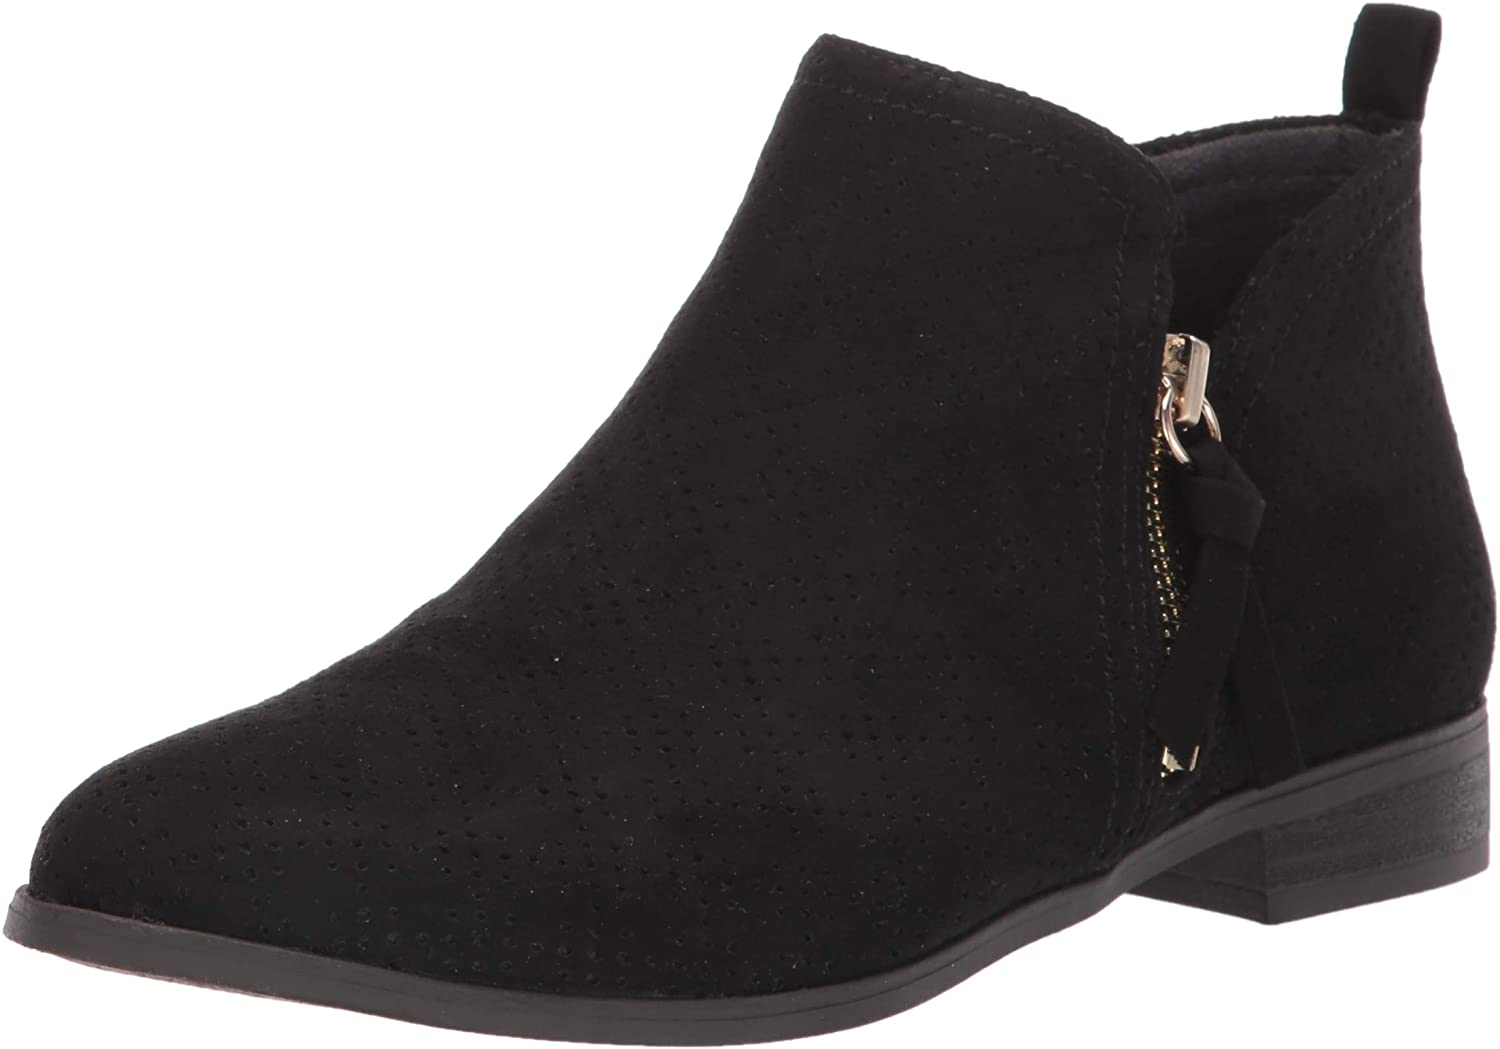 Dr. price Scholl's Award-winning store Shoes Women's Ankle Rise Boot Zip